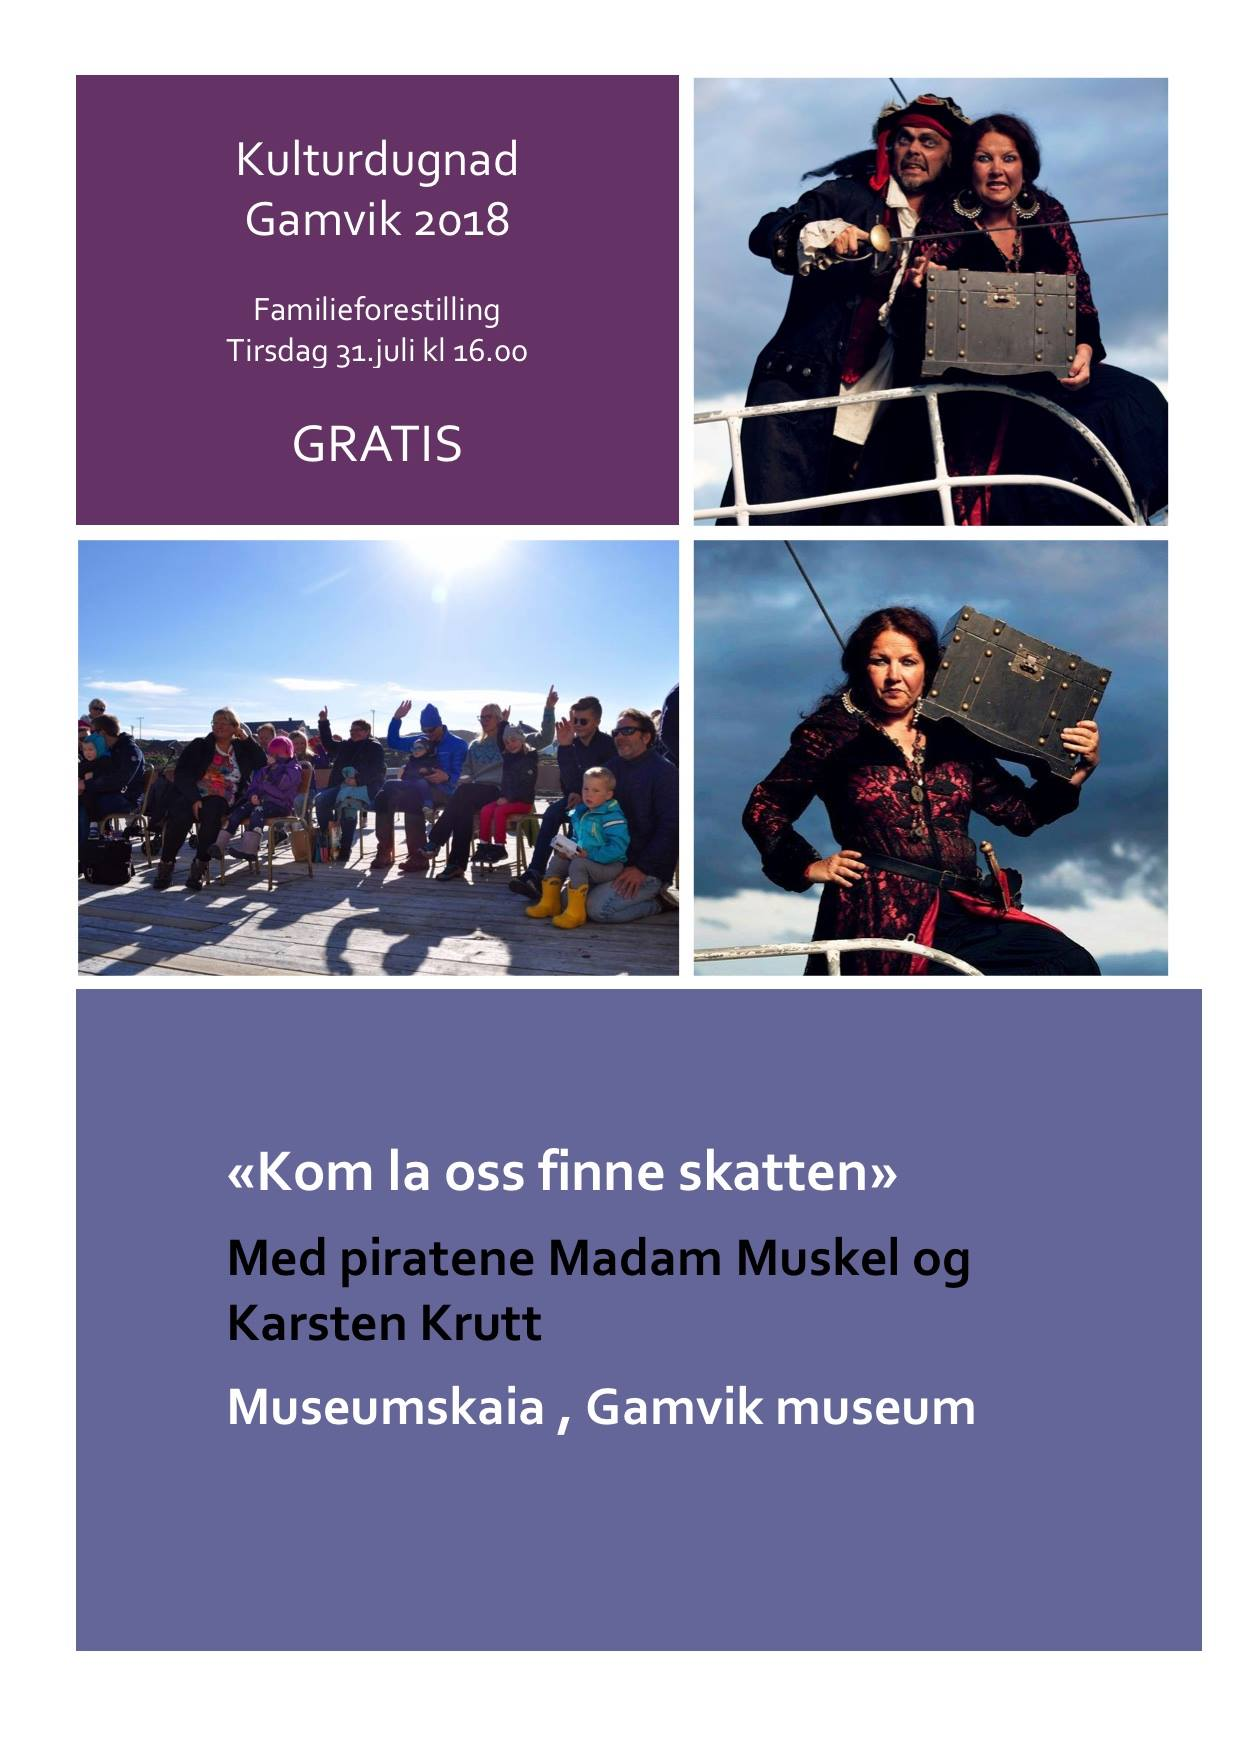 Program Kulturdugnad Gamvik 2018 6